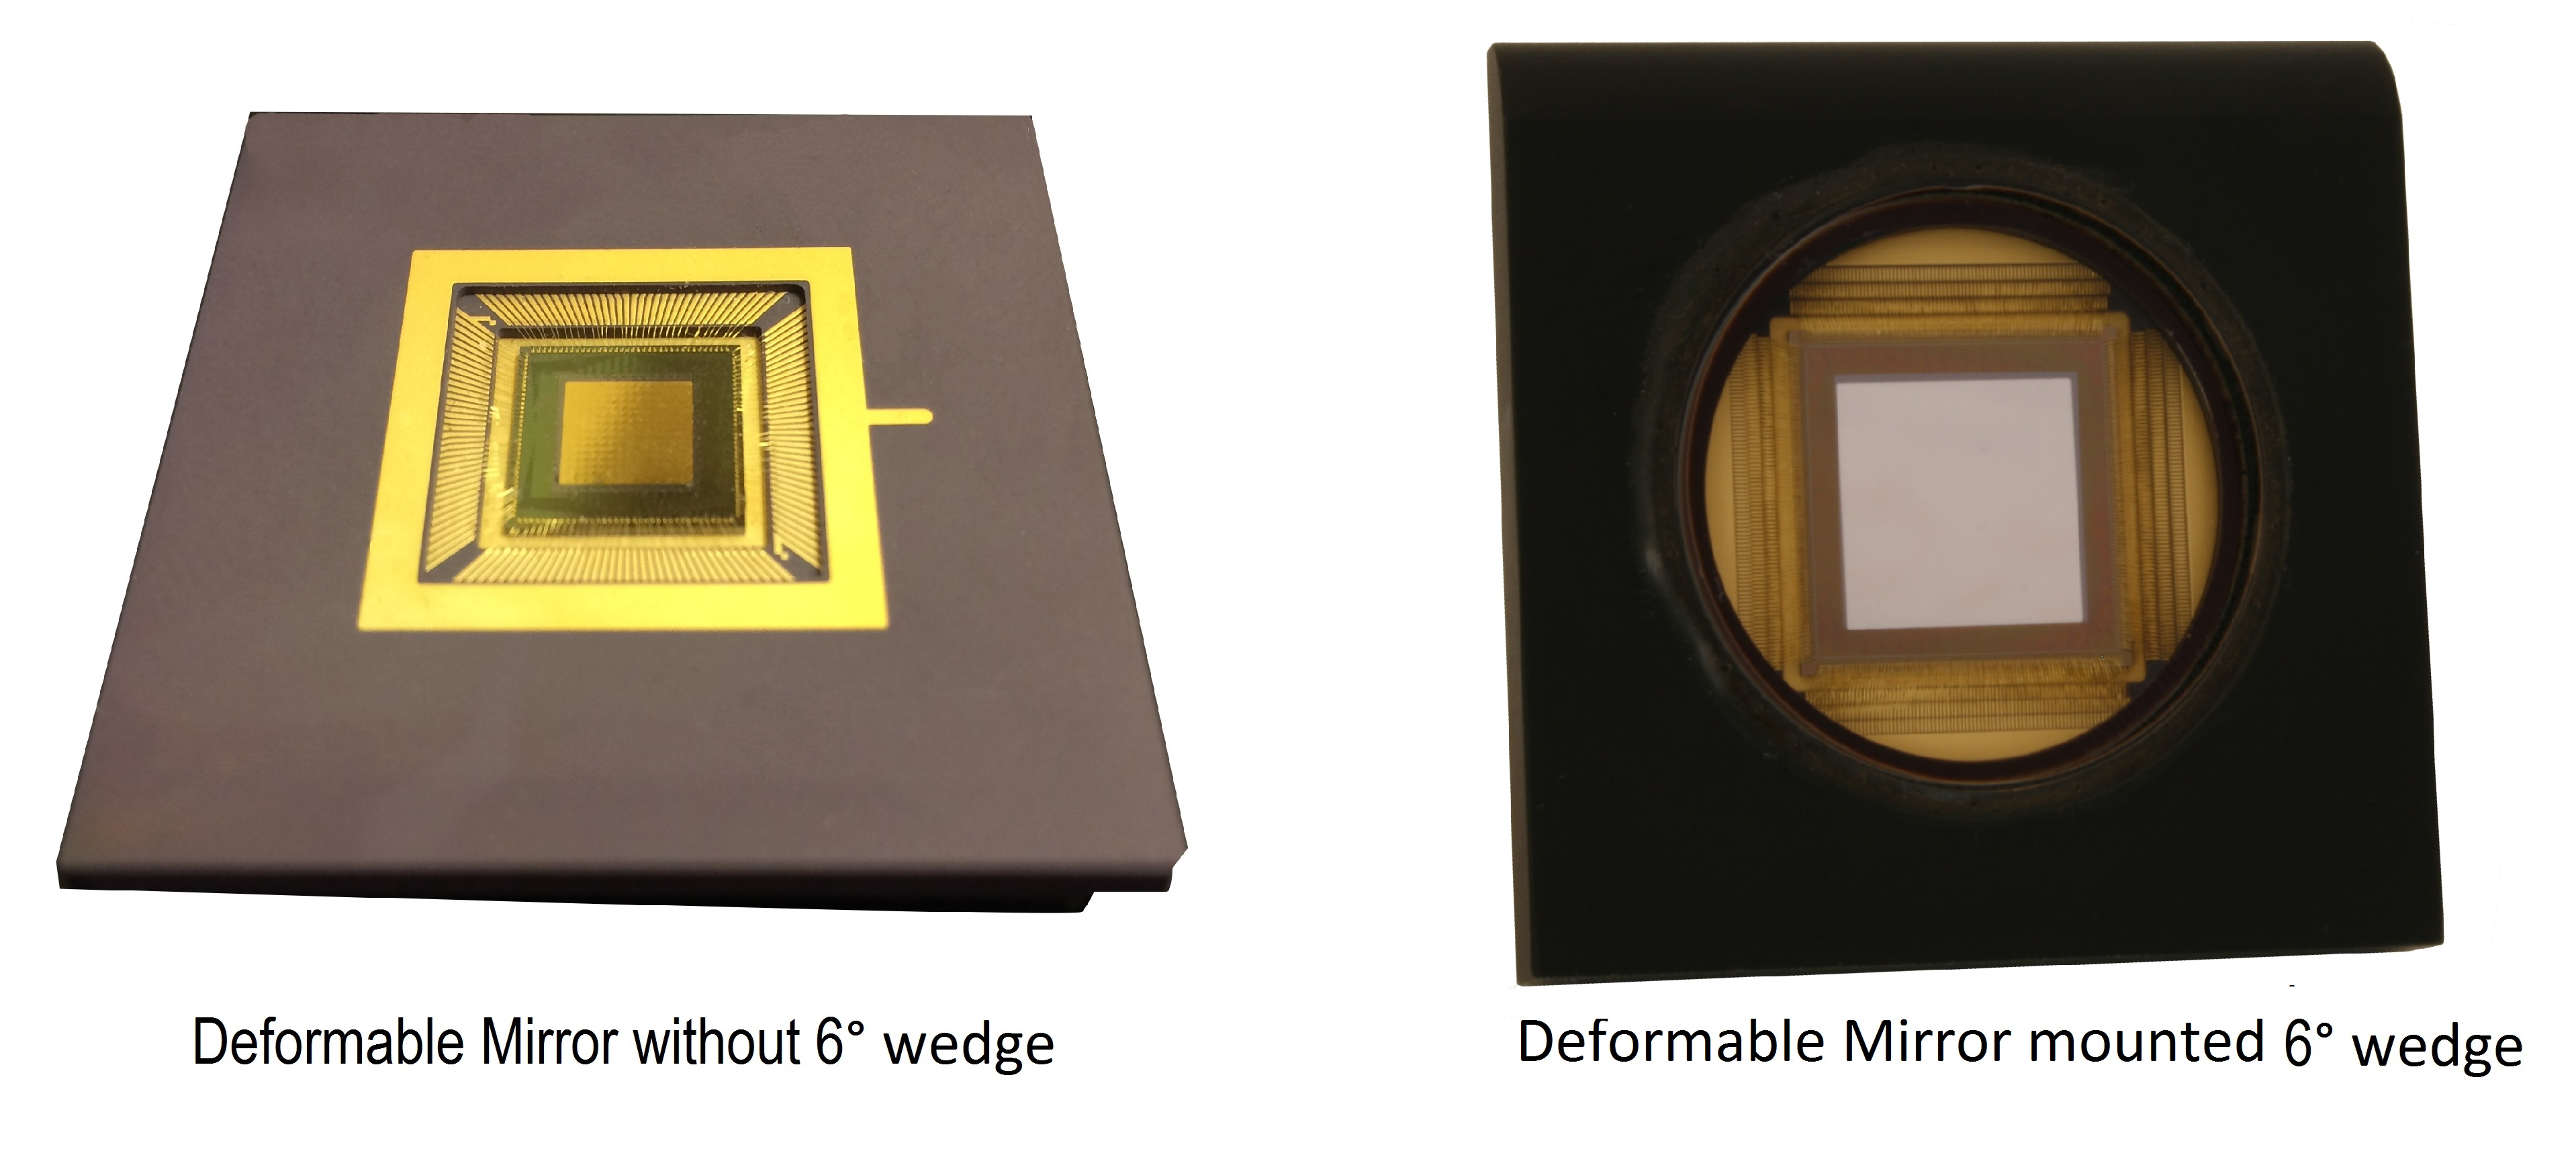 deformable mirrors, BMC,adaptive optics